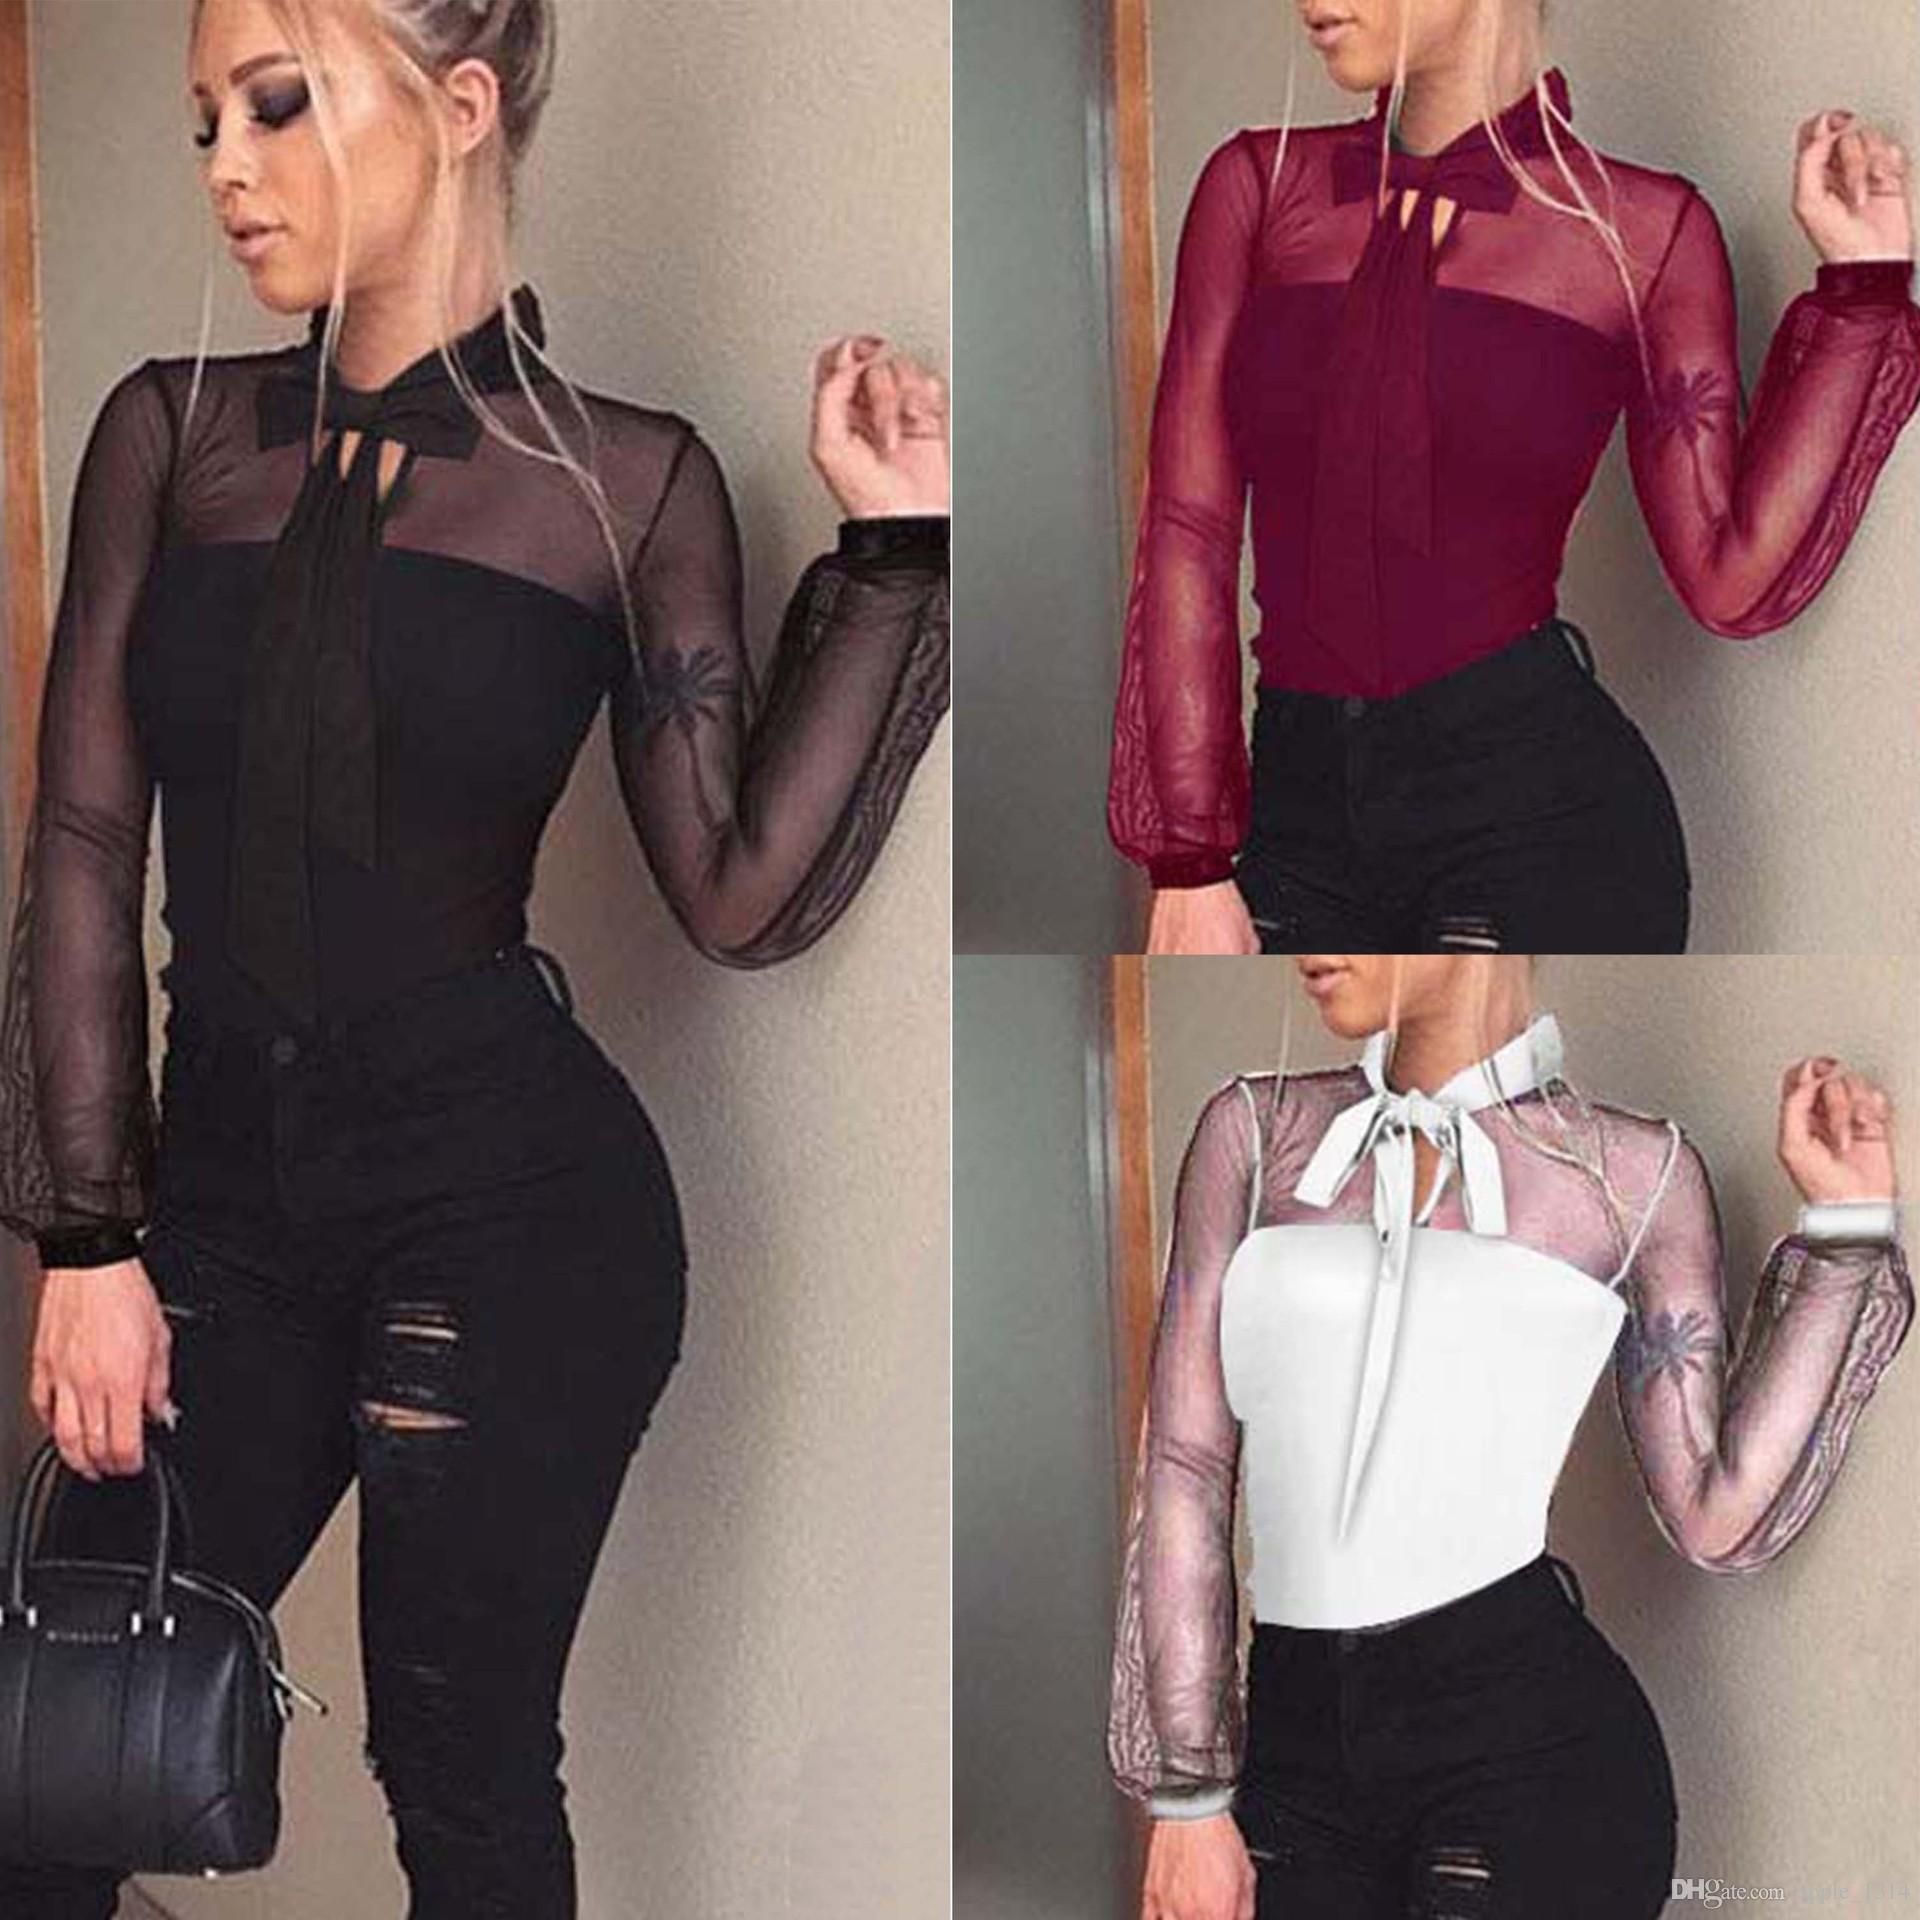 Bow Tie Mesh Shirts Women Lace Blouses Ladies Tops Black Wine Red Shirts Female Elegant Office Top Sexy Club Party Shirt Blusas